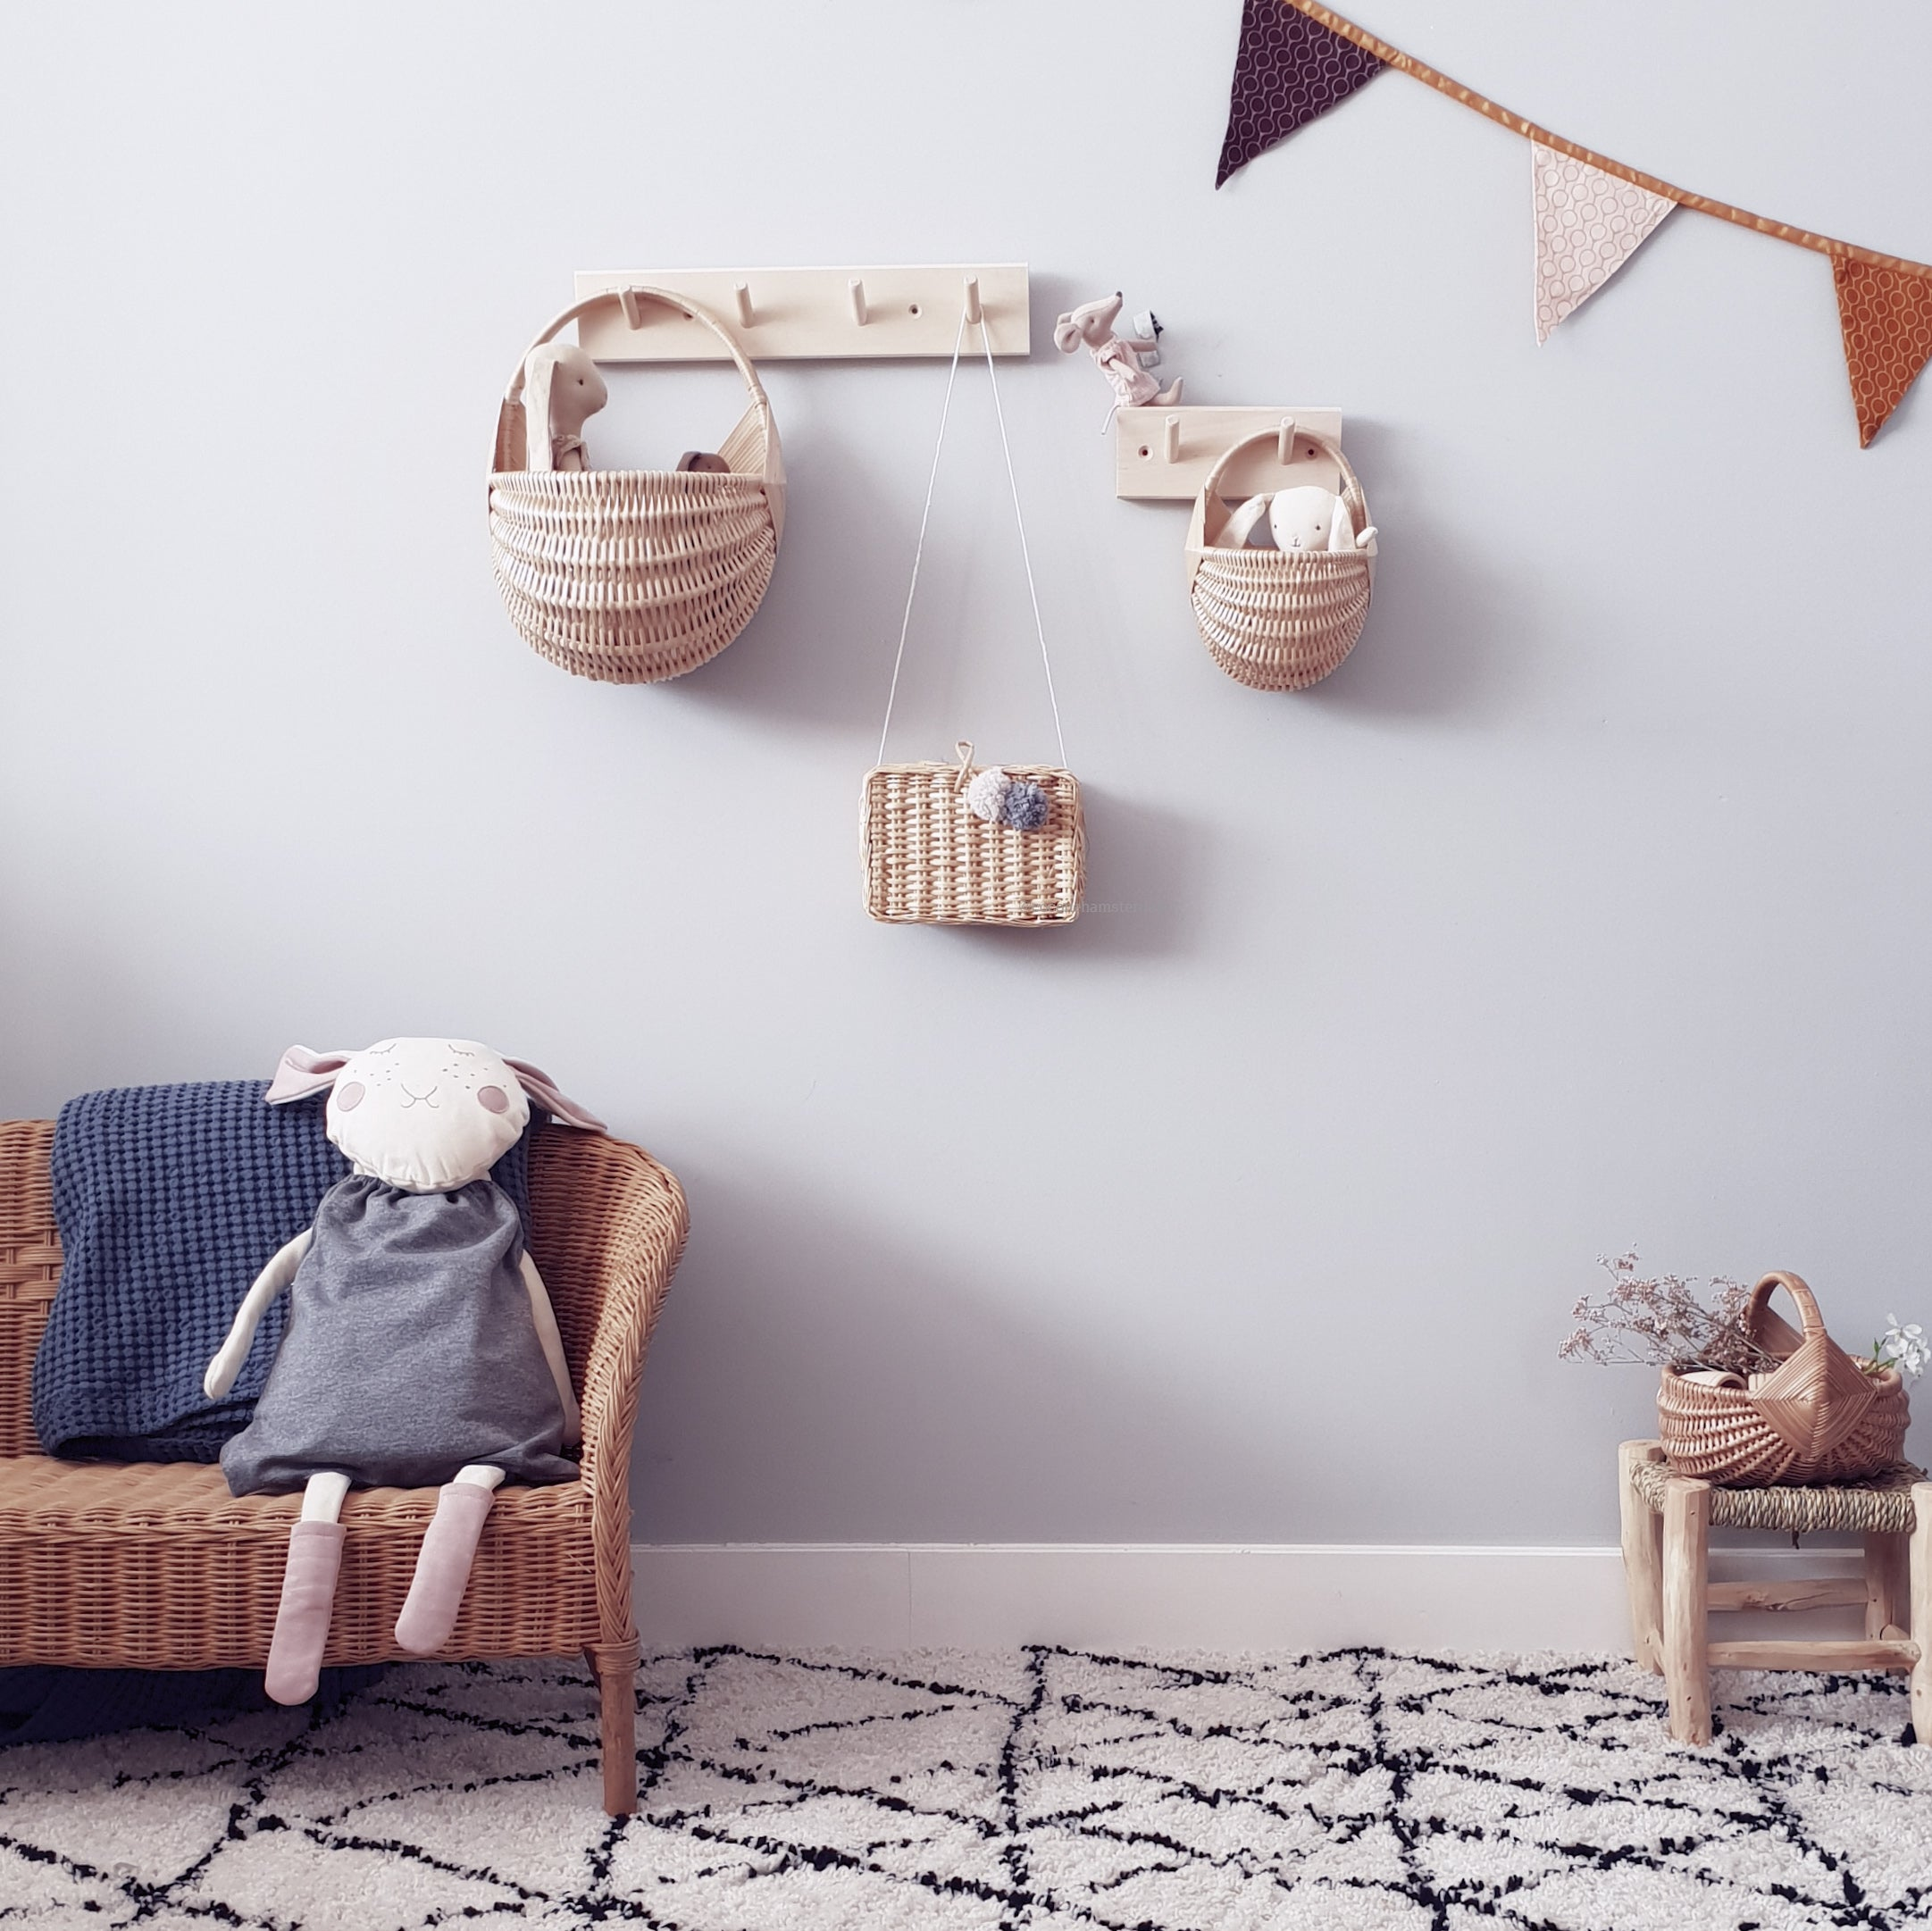 Wall Wicker Basket Large-PREORDER ARRIVAL 22 November